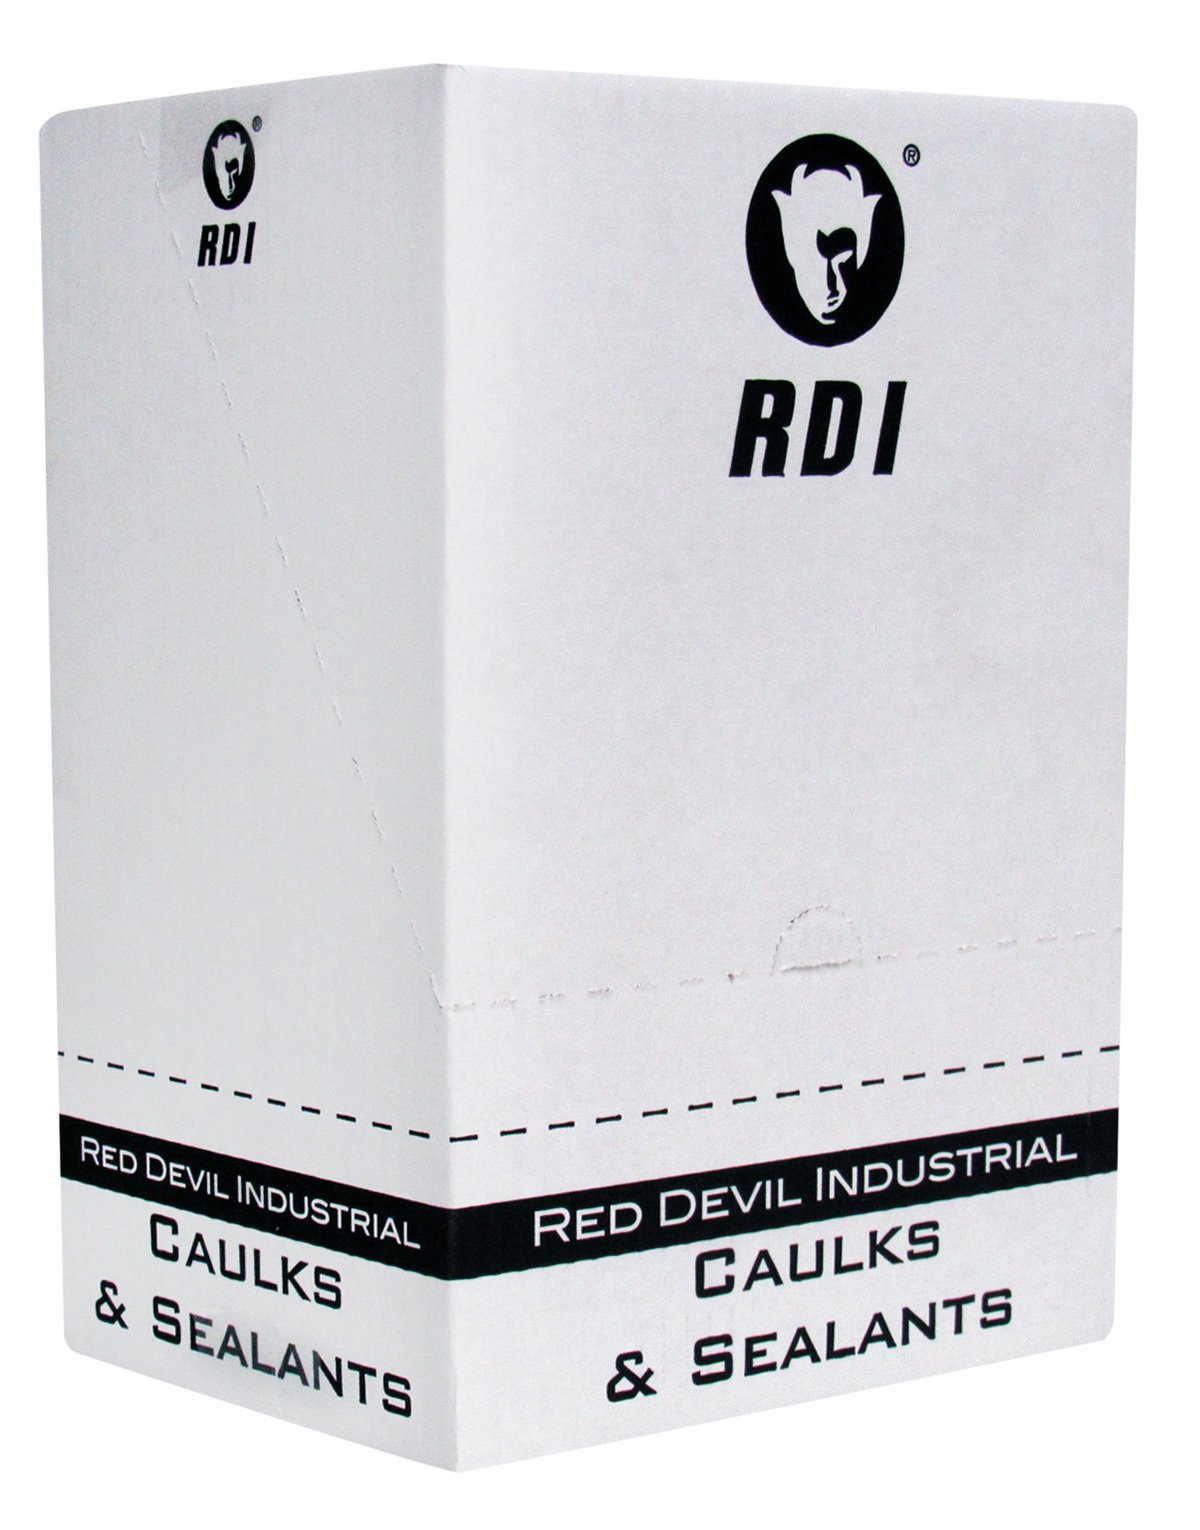 Red Devil 08160I12 08160I RD Pro Industrial Grade Rtv 100% Silicone Sealant Case of 12, White by Red Devil (Image #3)